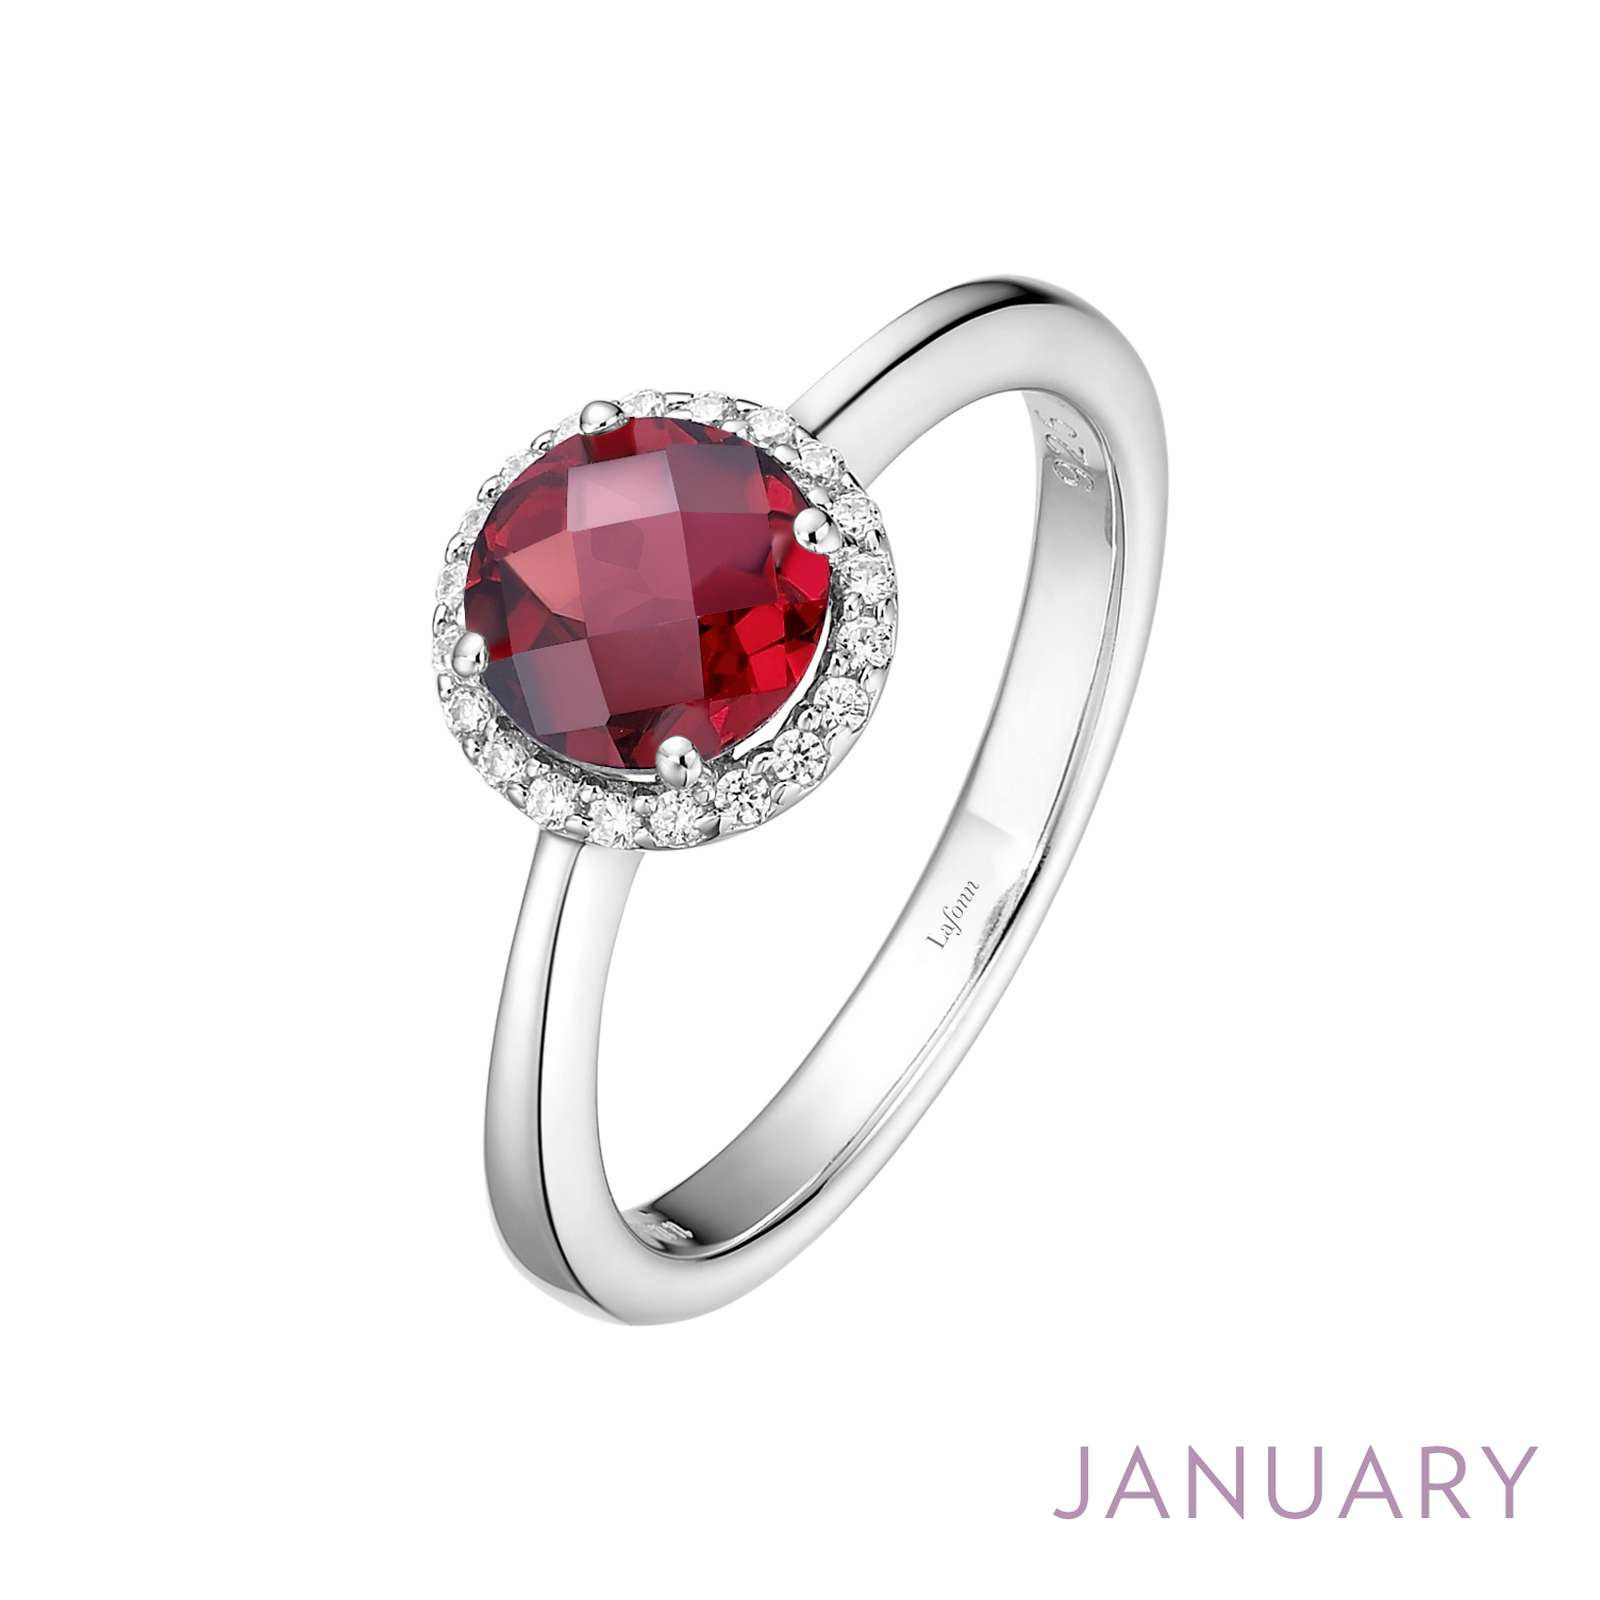 Birthstone January Platinum Bonded Ring by Lafonn